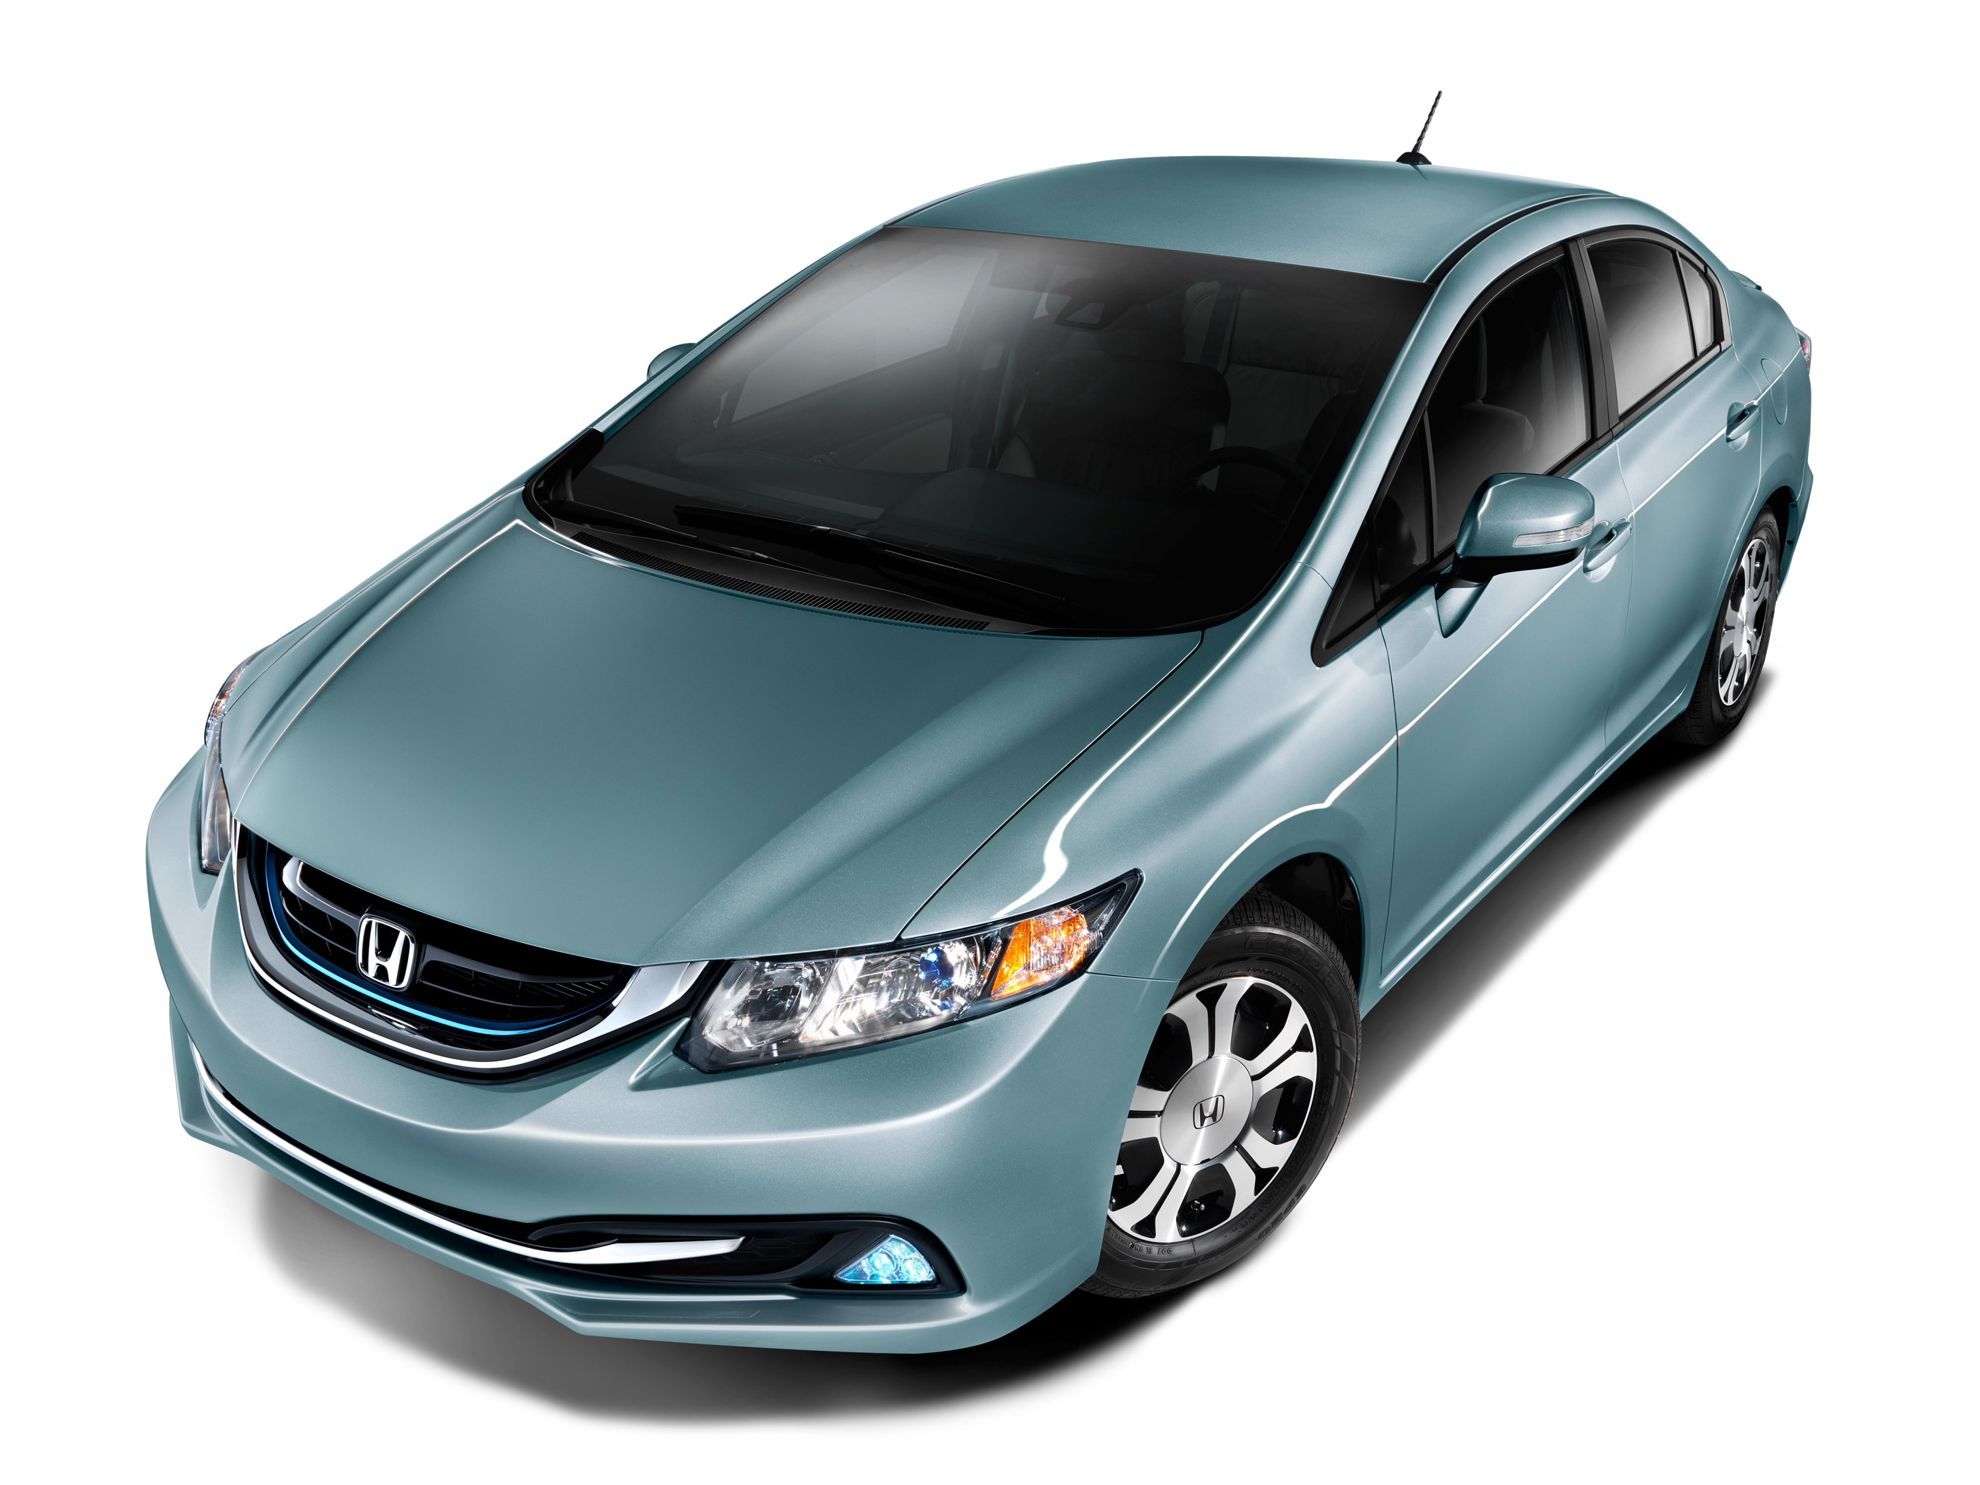 2014_Honda_Civic_Hybrid